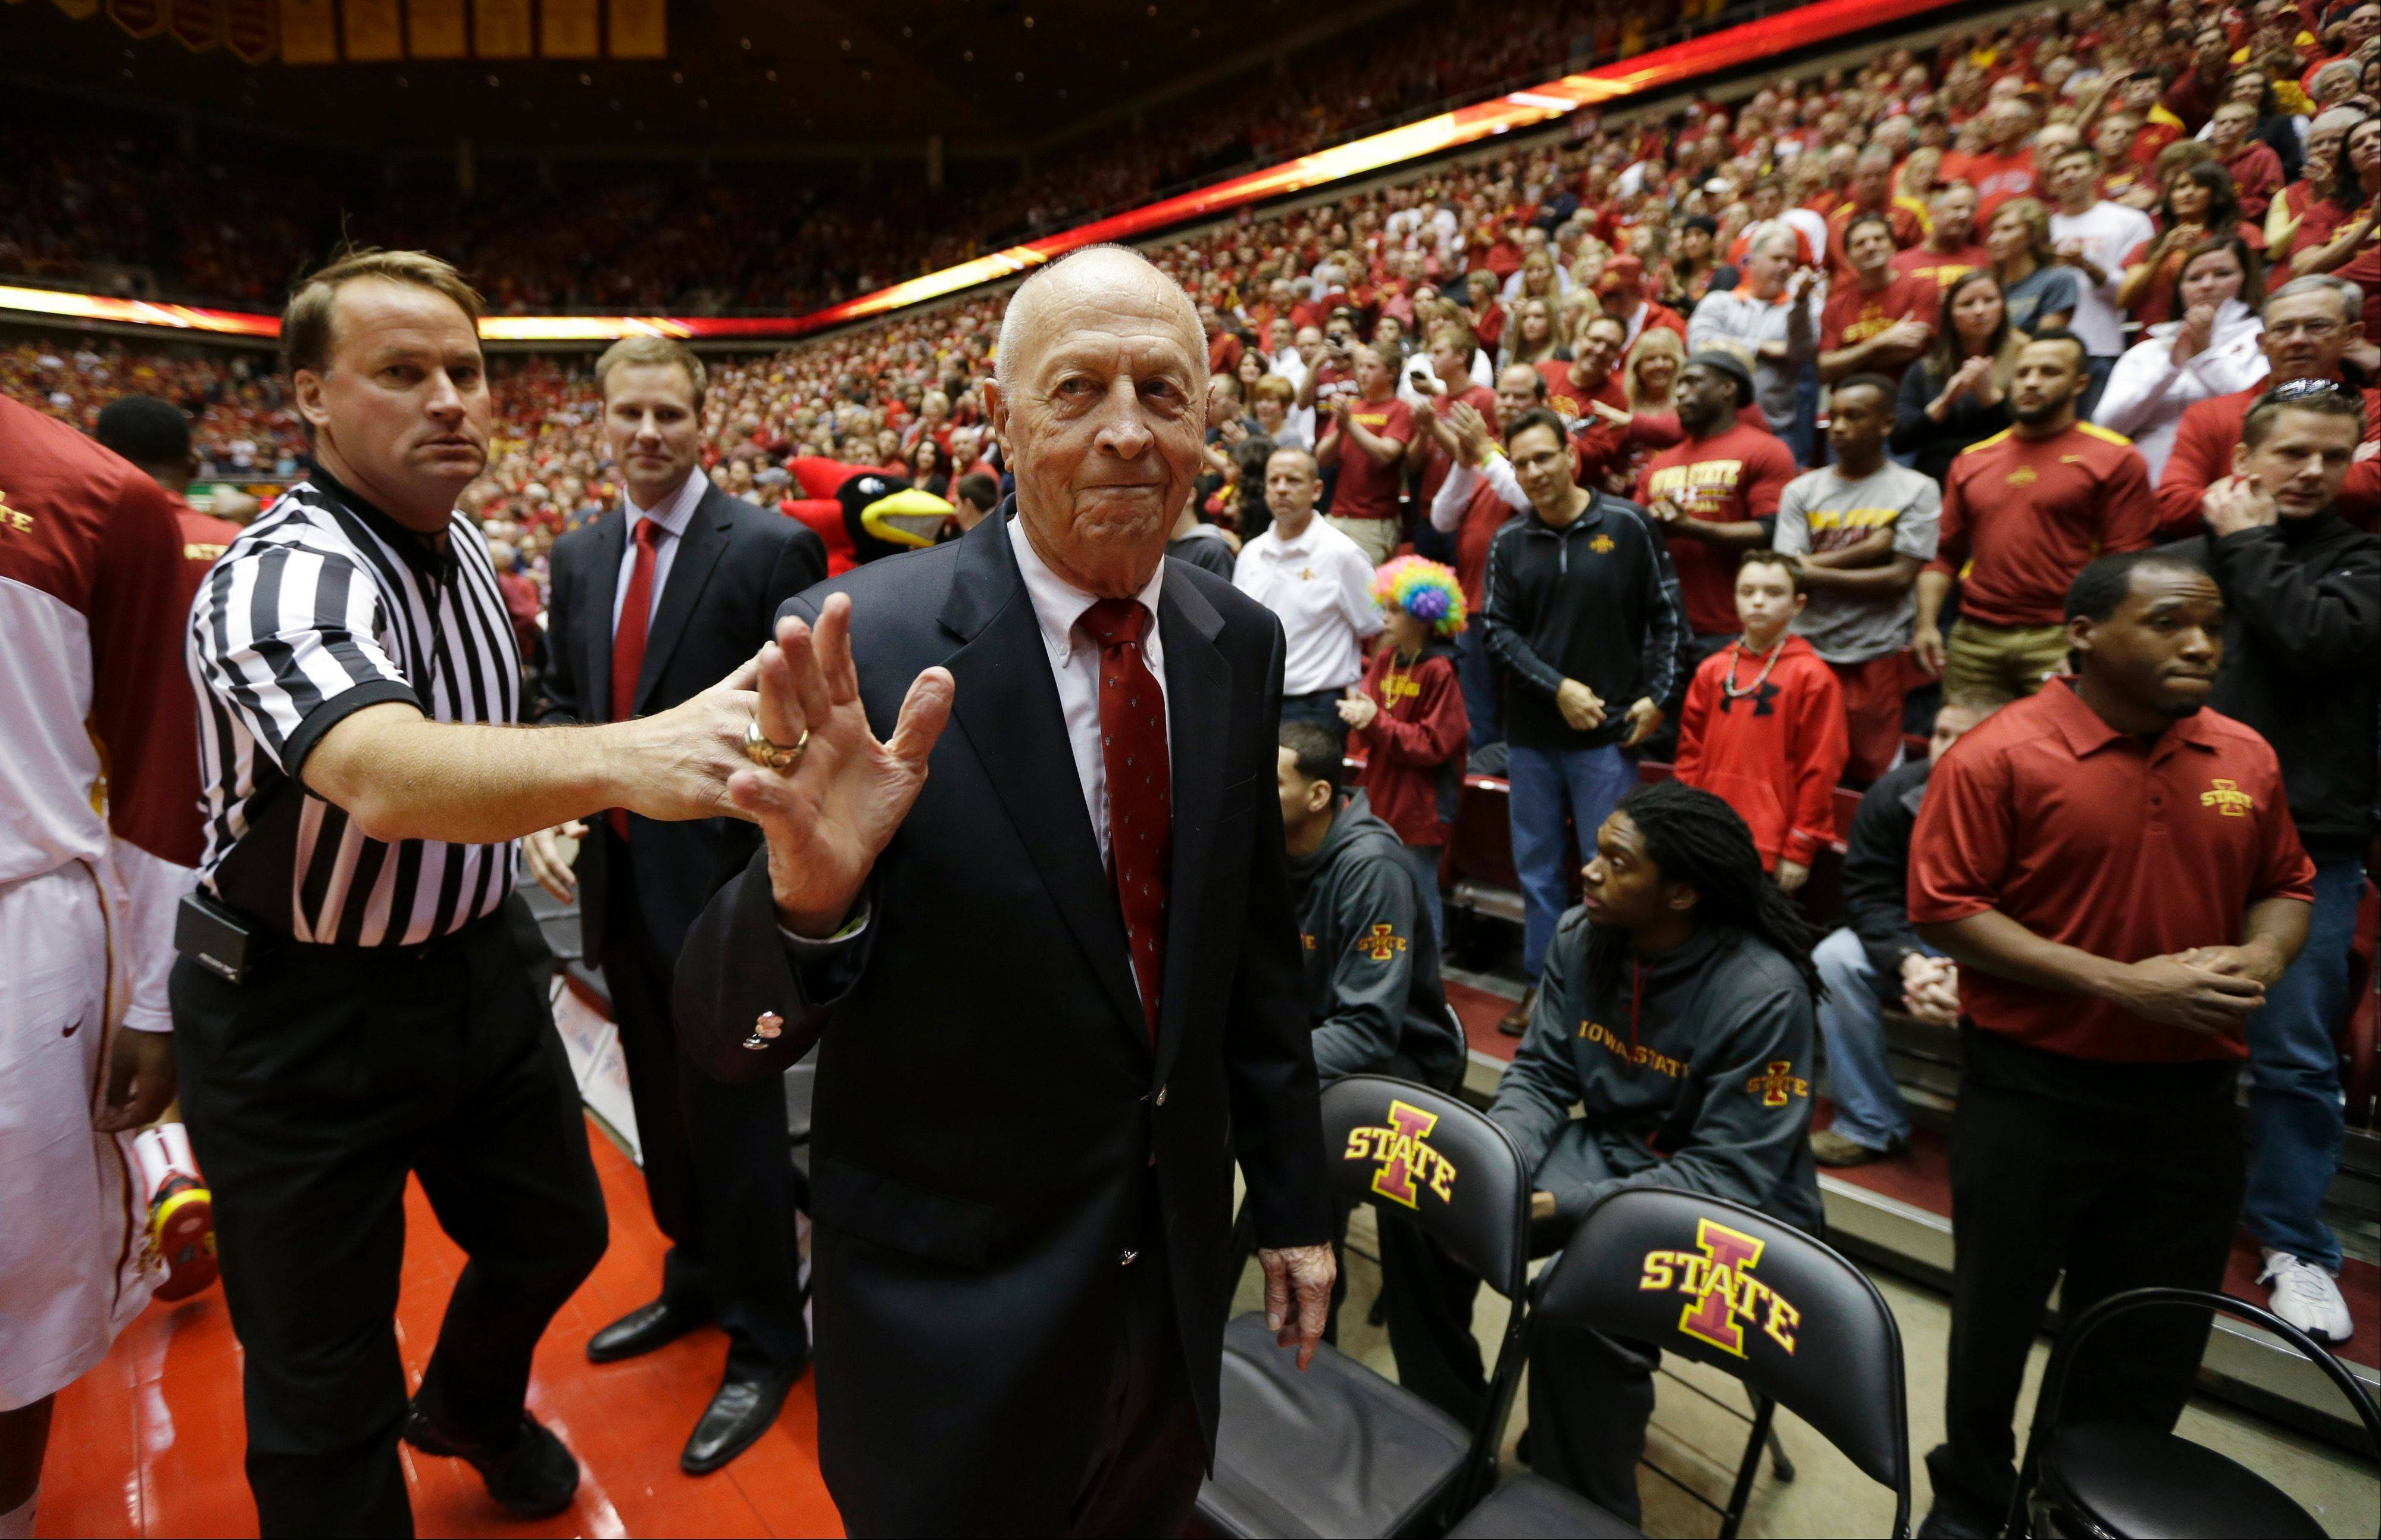 Former Iowa State basketball coach Johnny Orr waves to fans as he walks off the court before a basketball game between Iowa State and Michigan on Nov. 17, 2013, in Ames, Iowa. Orr coached at Michigan for 12 seasons before directing the Cyclones from 1980-94.